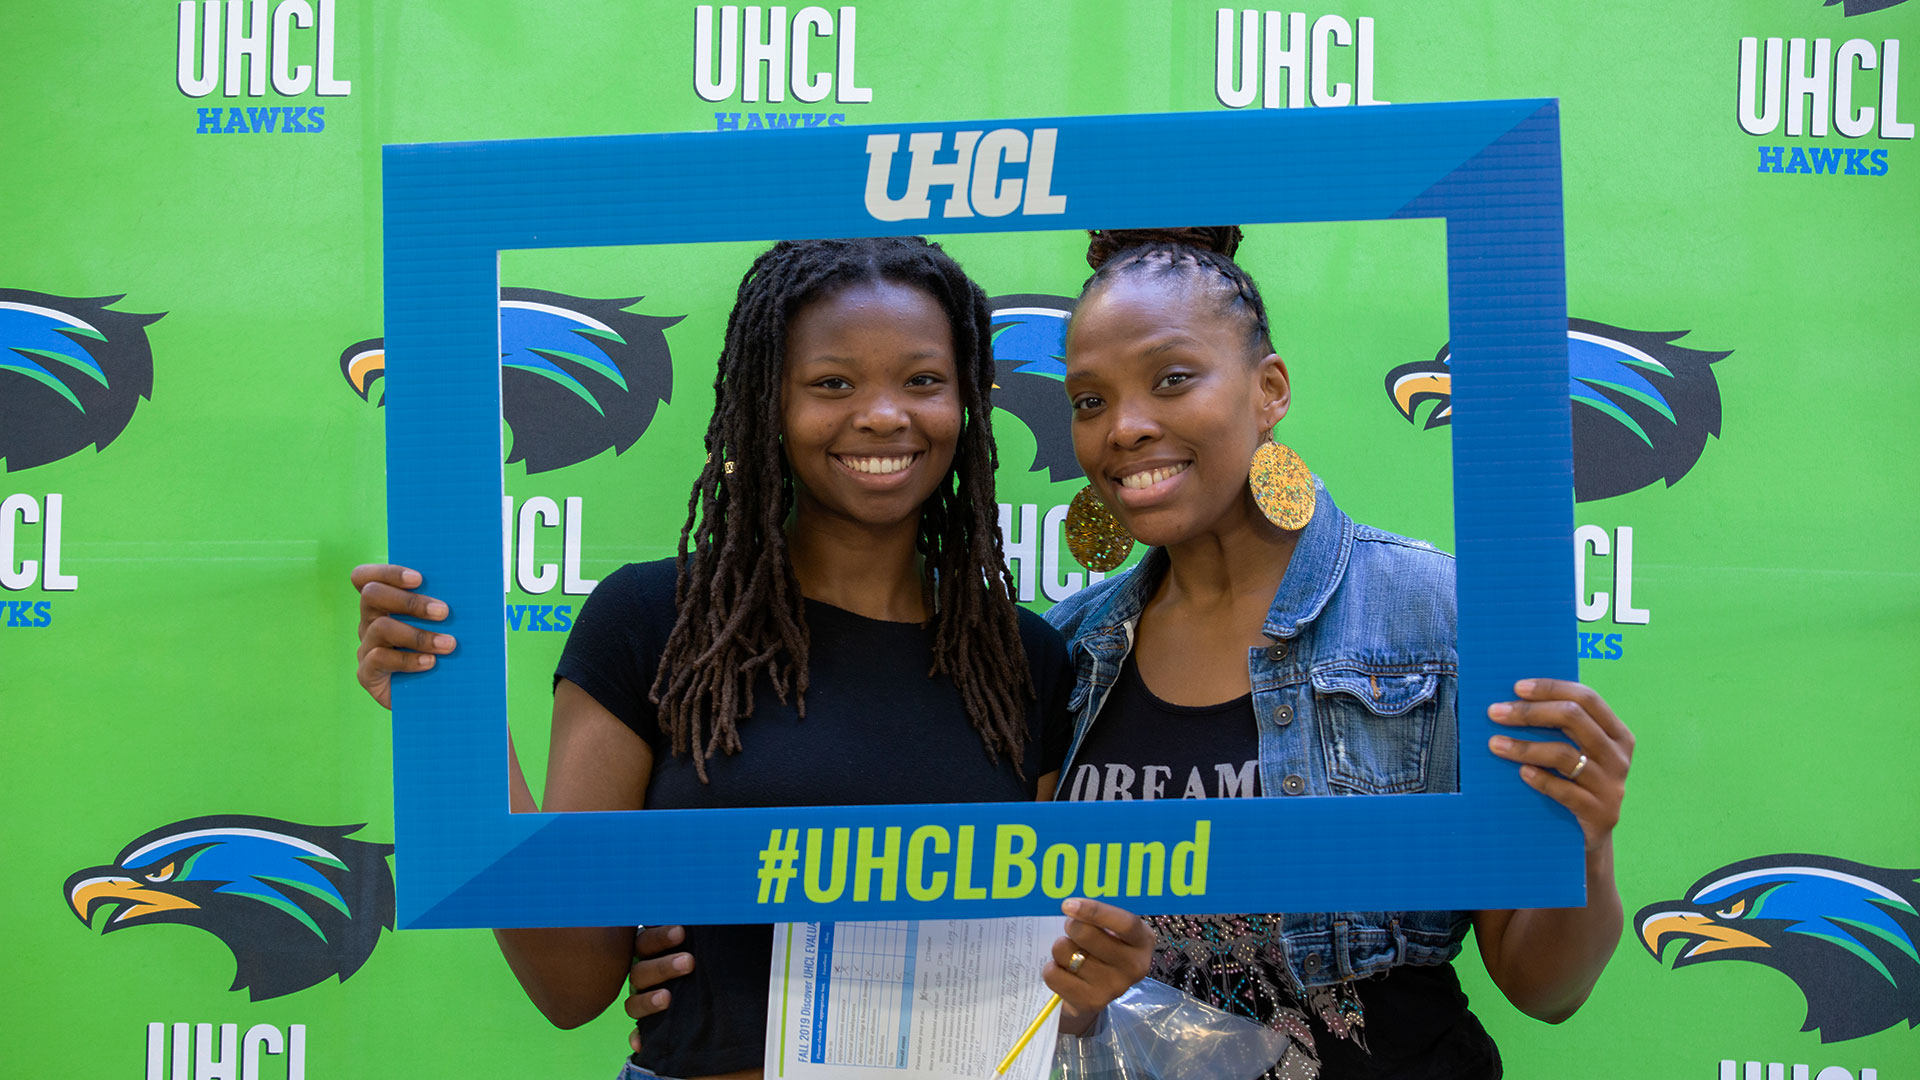 High school, transfer students can apply free at Discover UHCL